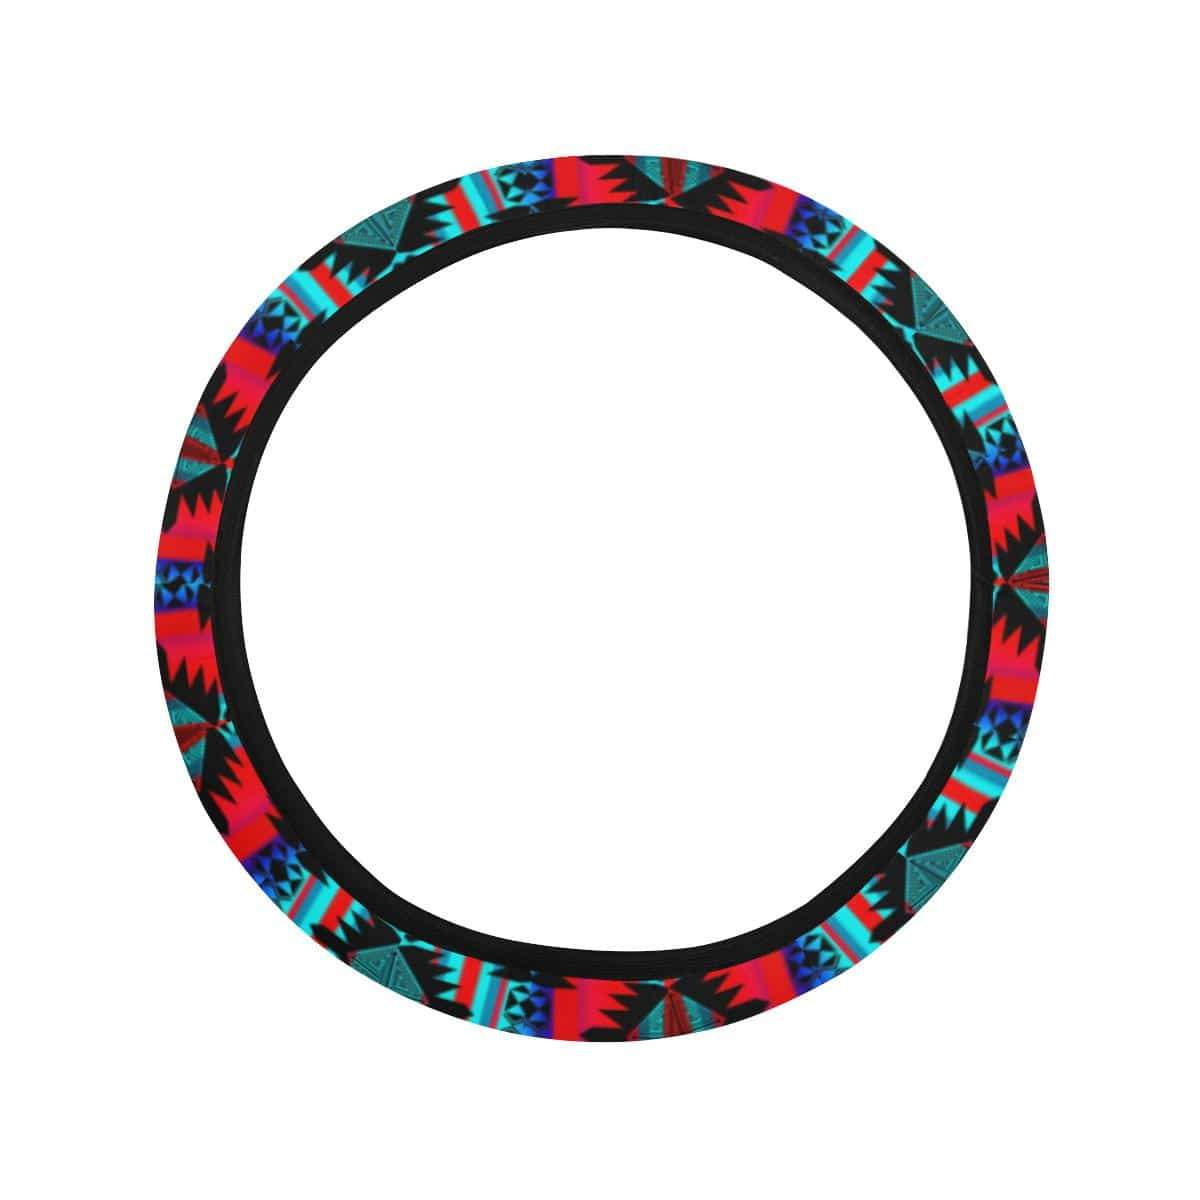 Okotoks Mountain Steering Wheel Cover with Elastic Edge Steering Wheel Cover with Elastic Edge e-joyer